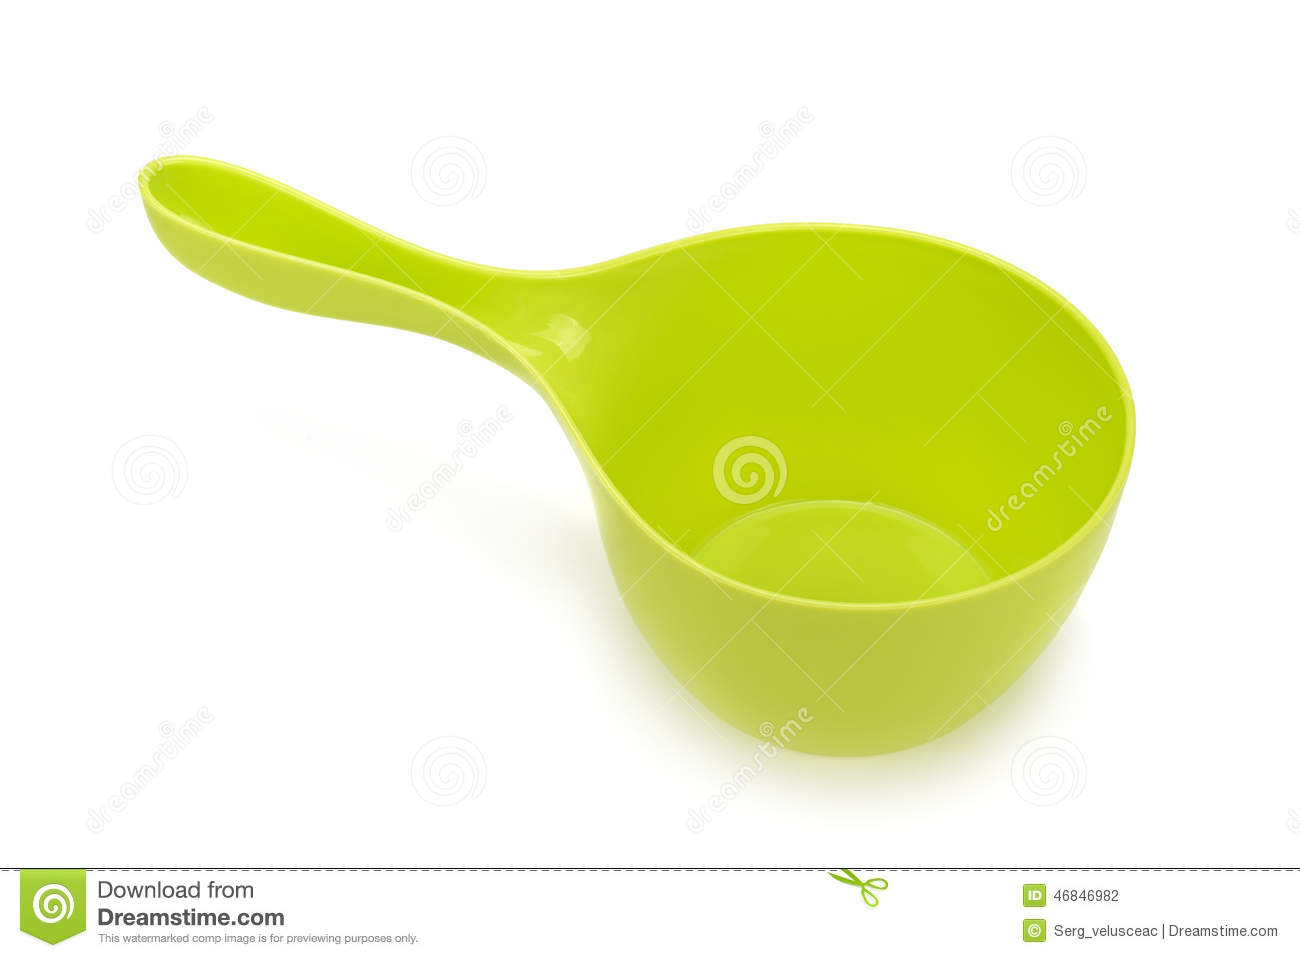 Clipart dipper picture freeuse download Water dipper clipart 8 » Clipart Station picture freeuse download